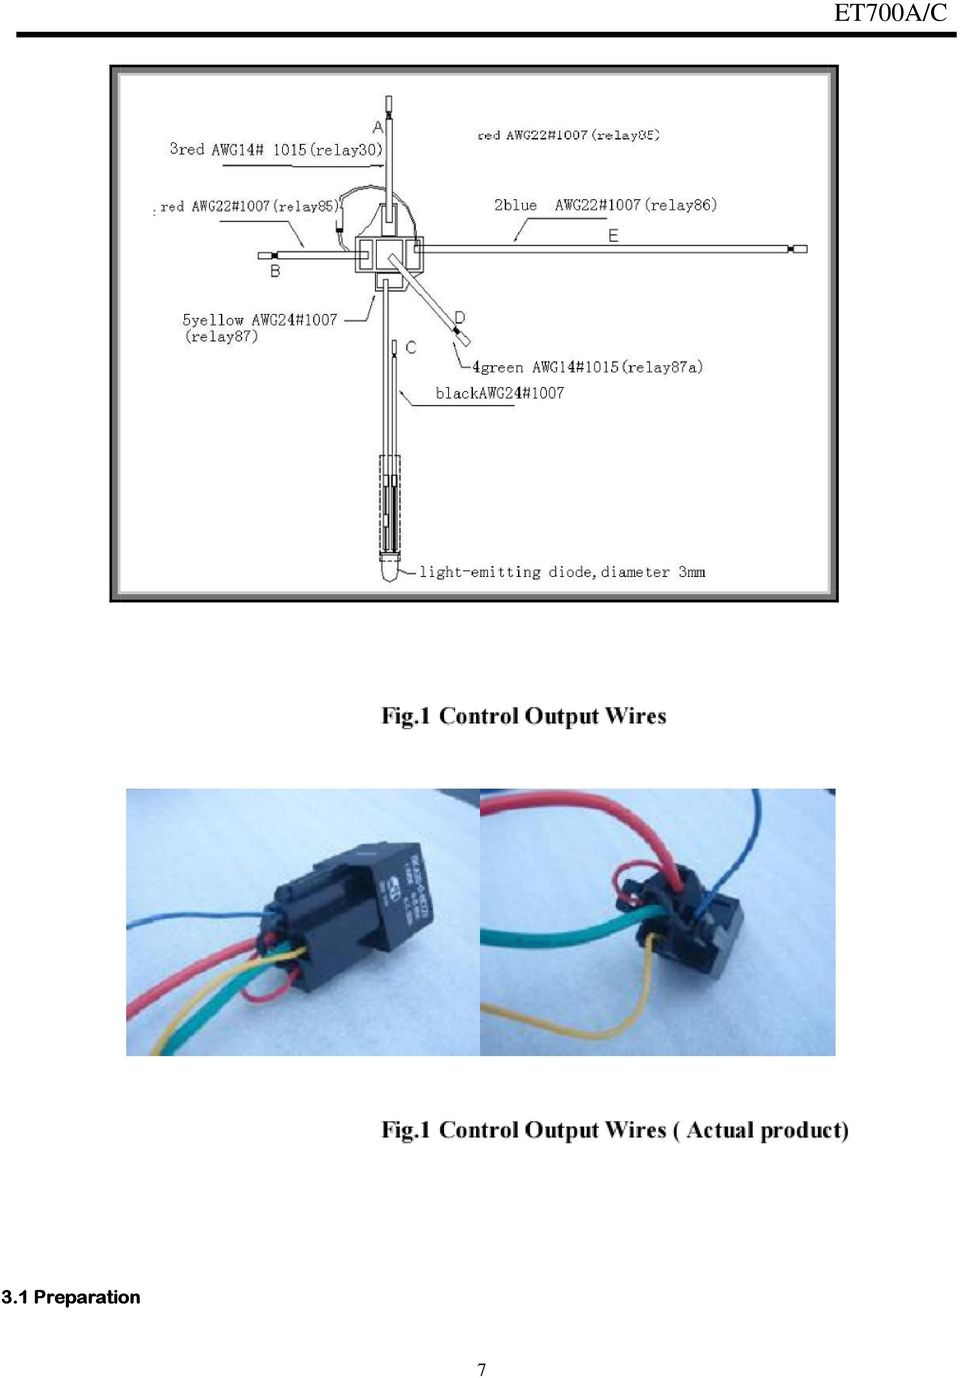 Gps Gprs Gsm Avl Vehicle Tracking System Operation Manual Model Police Wiring Diagram Make Sure That No Item In The Package Contents Is Missed Before You Install Terminal 2 Prepare A Sim With Sms Or Function 3